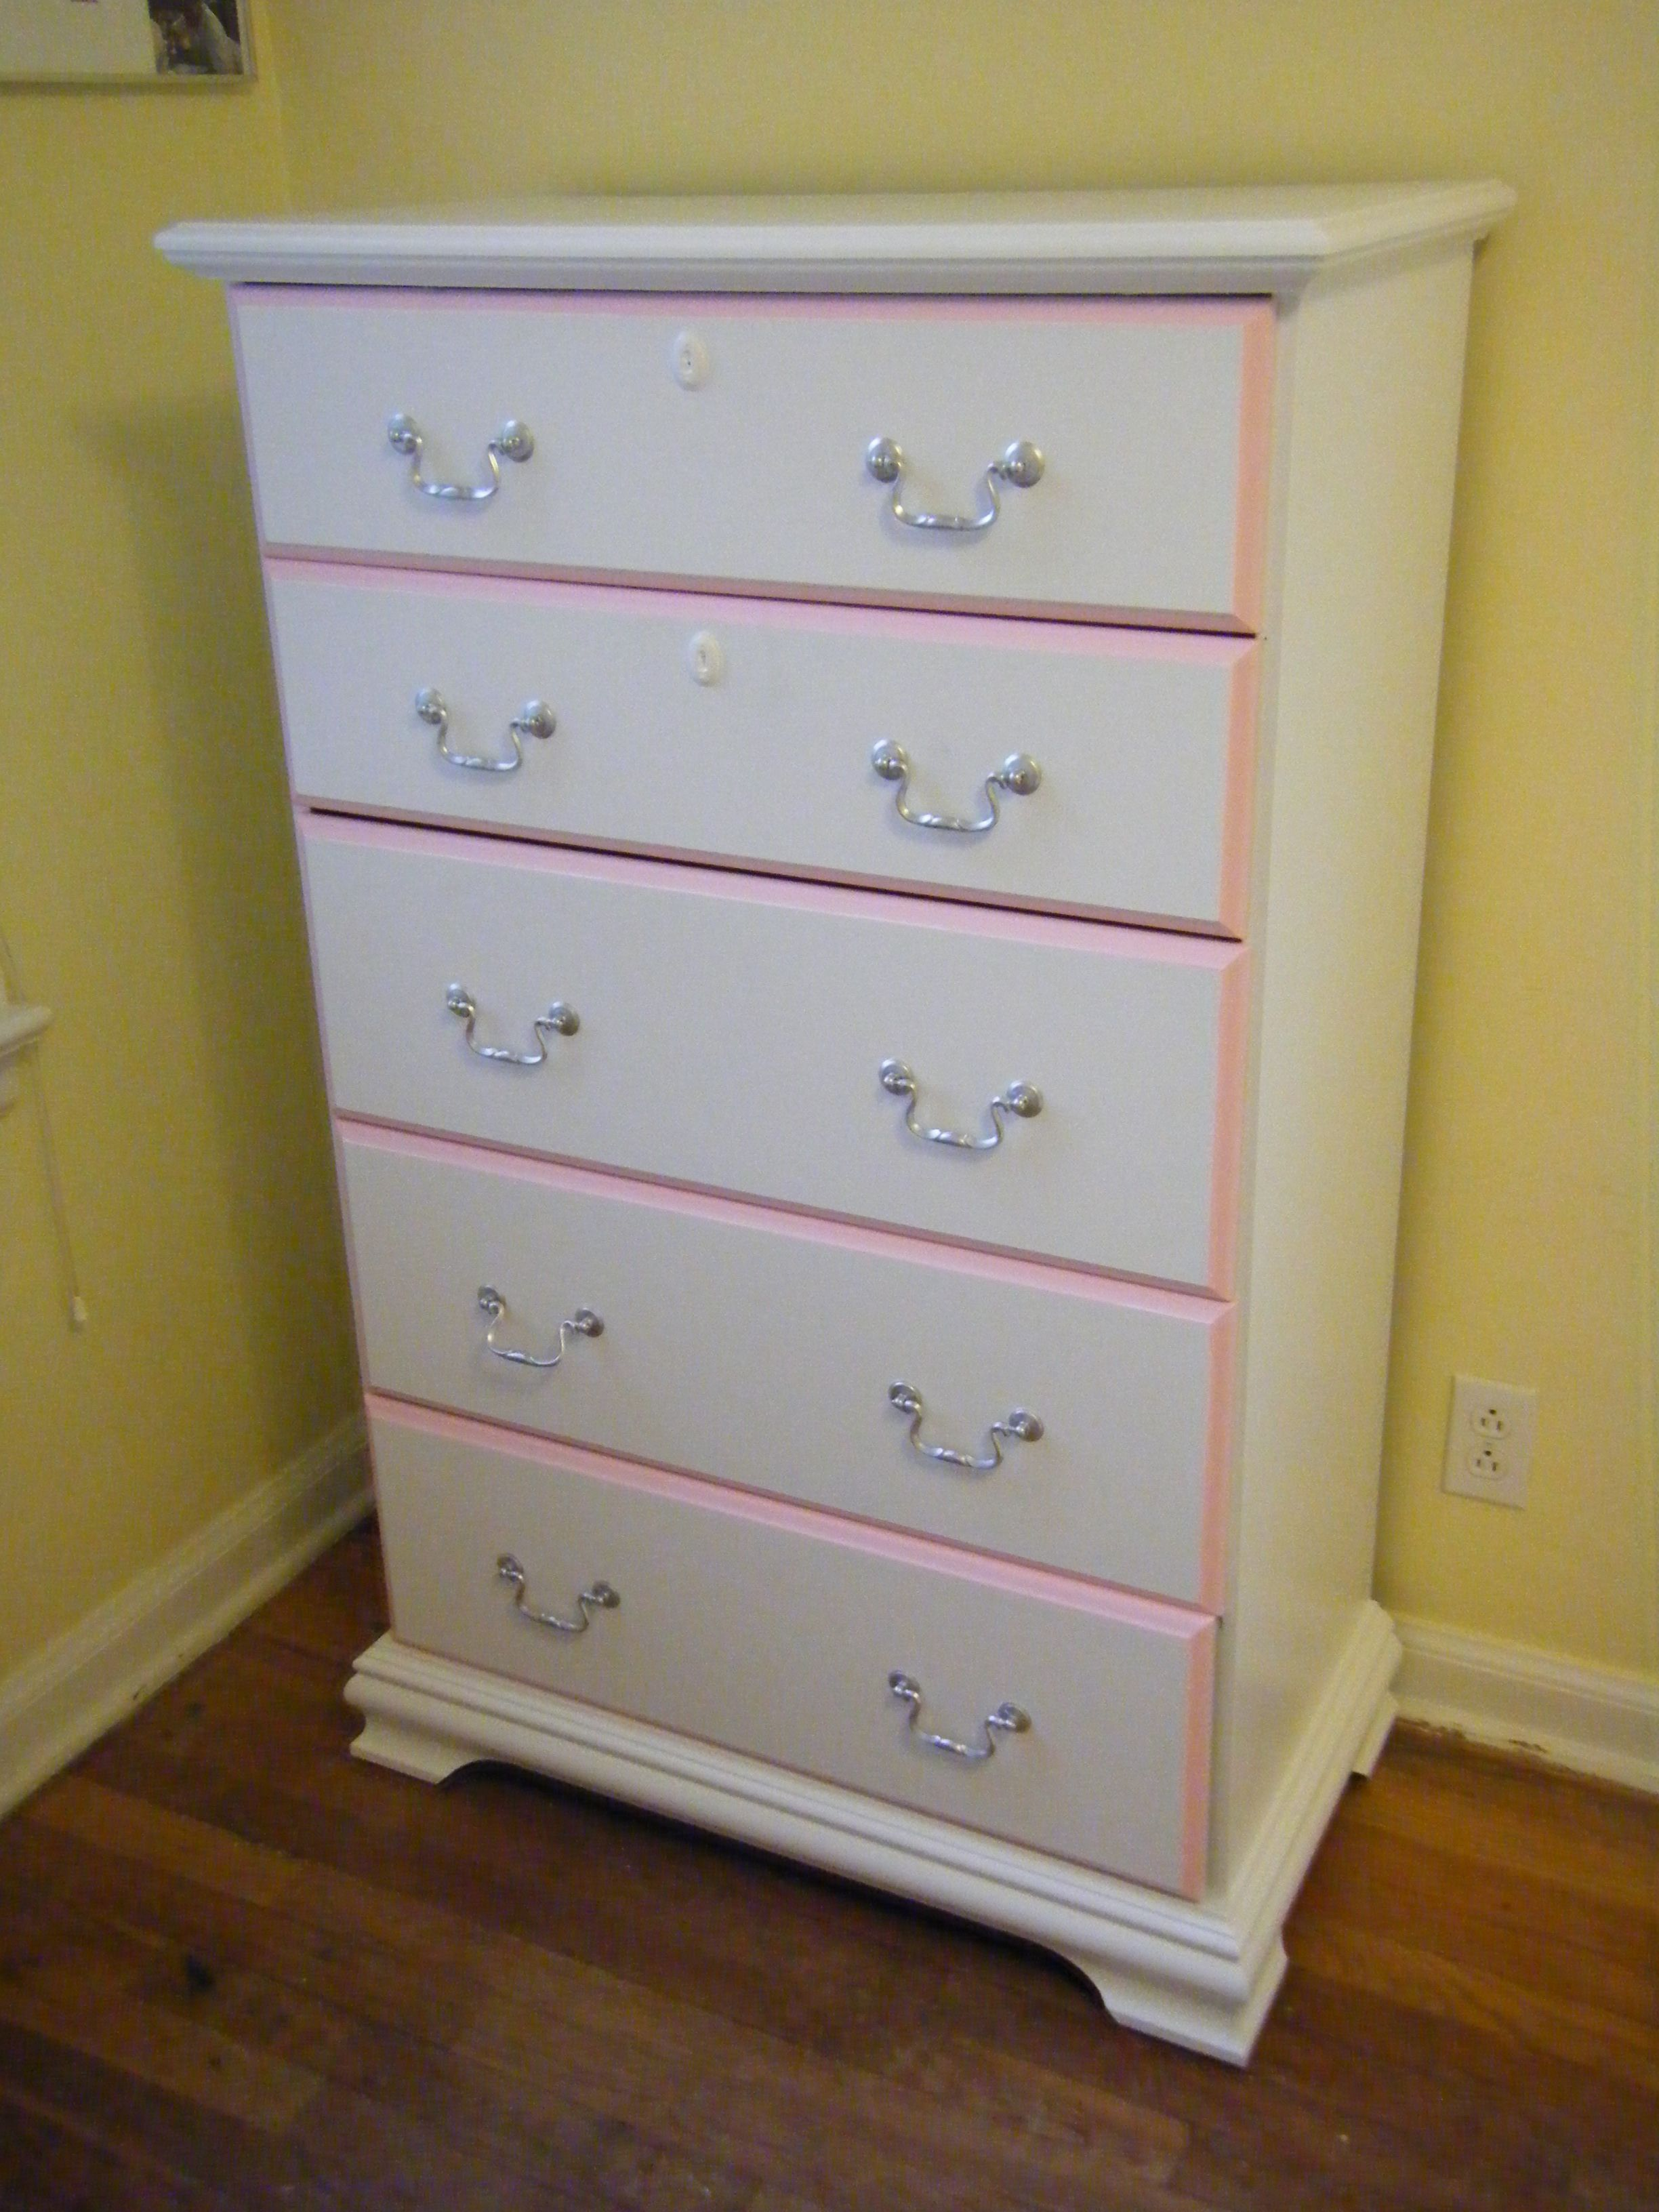 Some Sandpaper Kilz And Paint And An Old Sauder Dresser Is